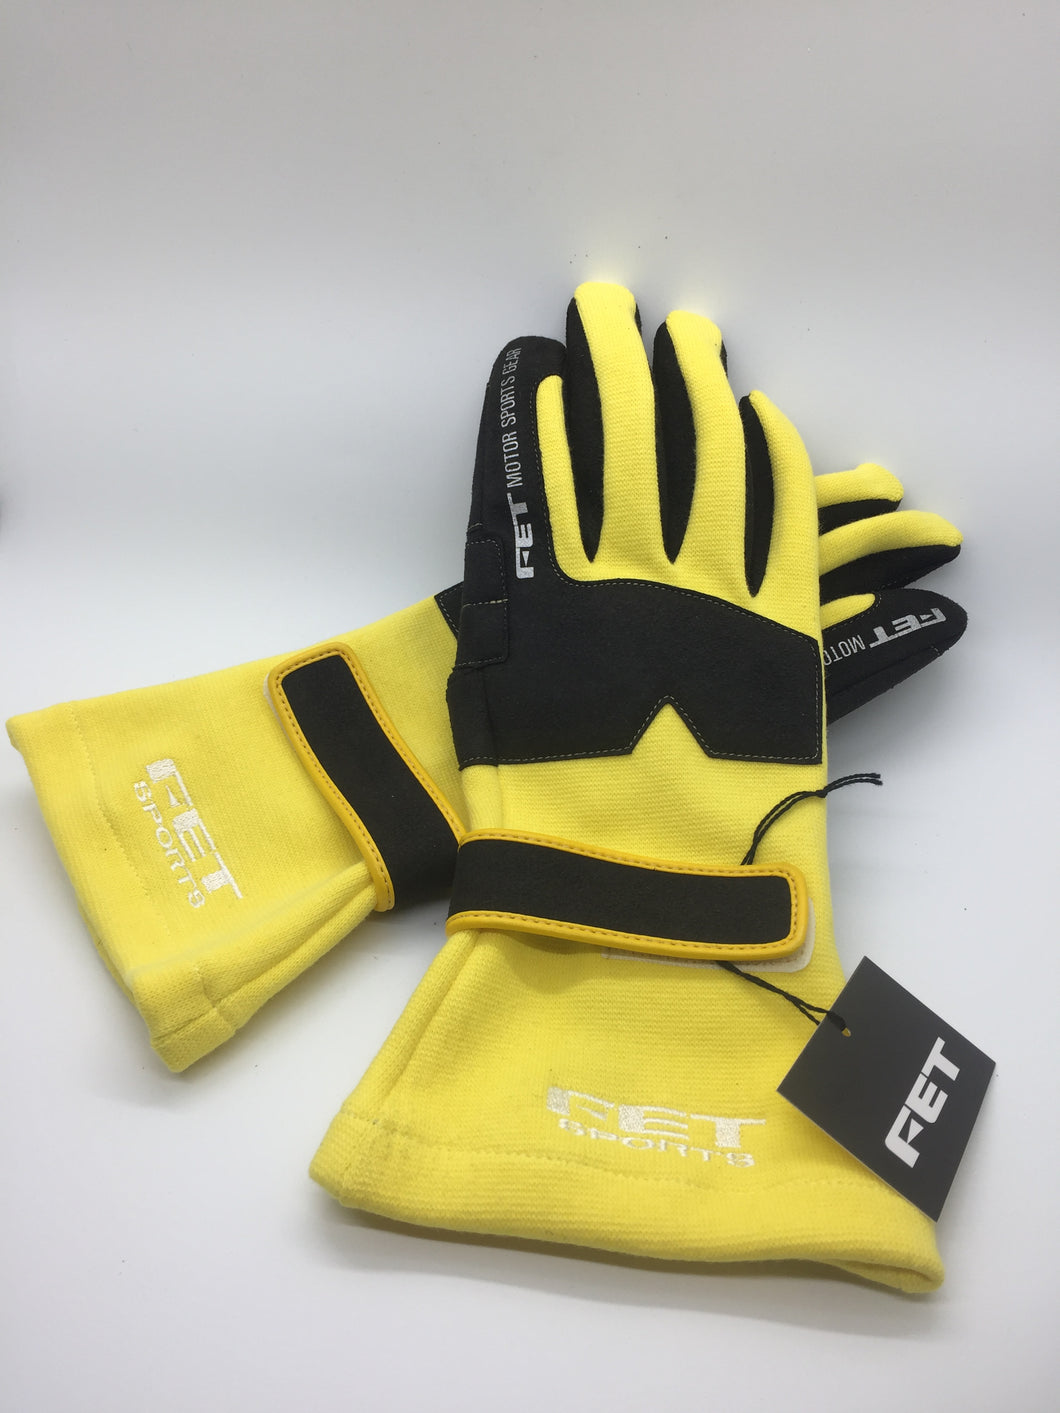 New FET 3D Standard Weight Racing Gloves Yellow And Black, Medium